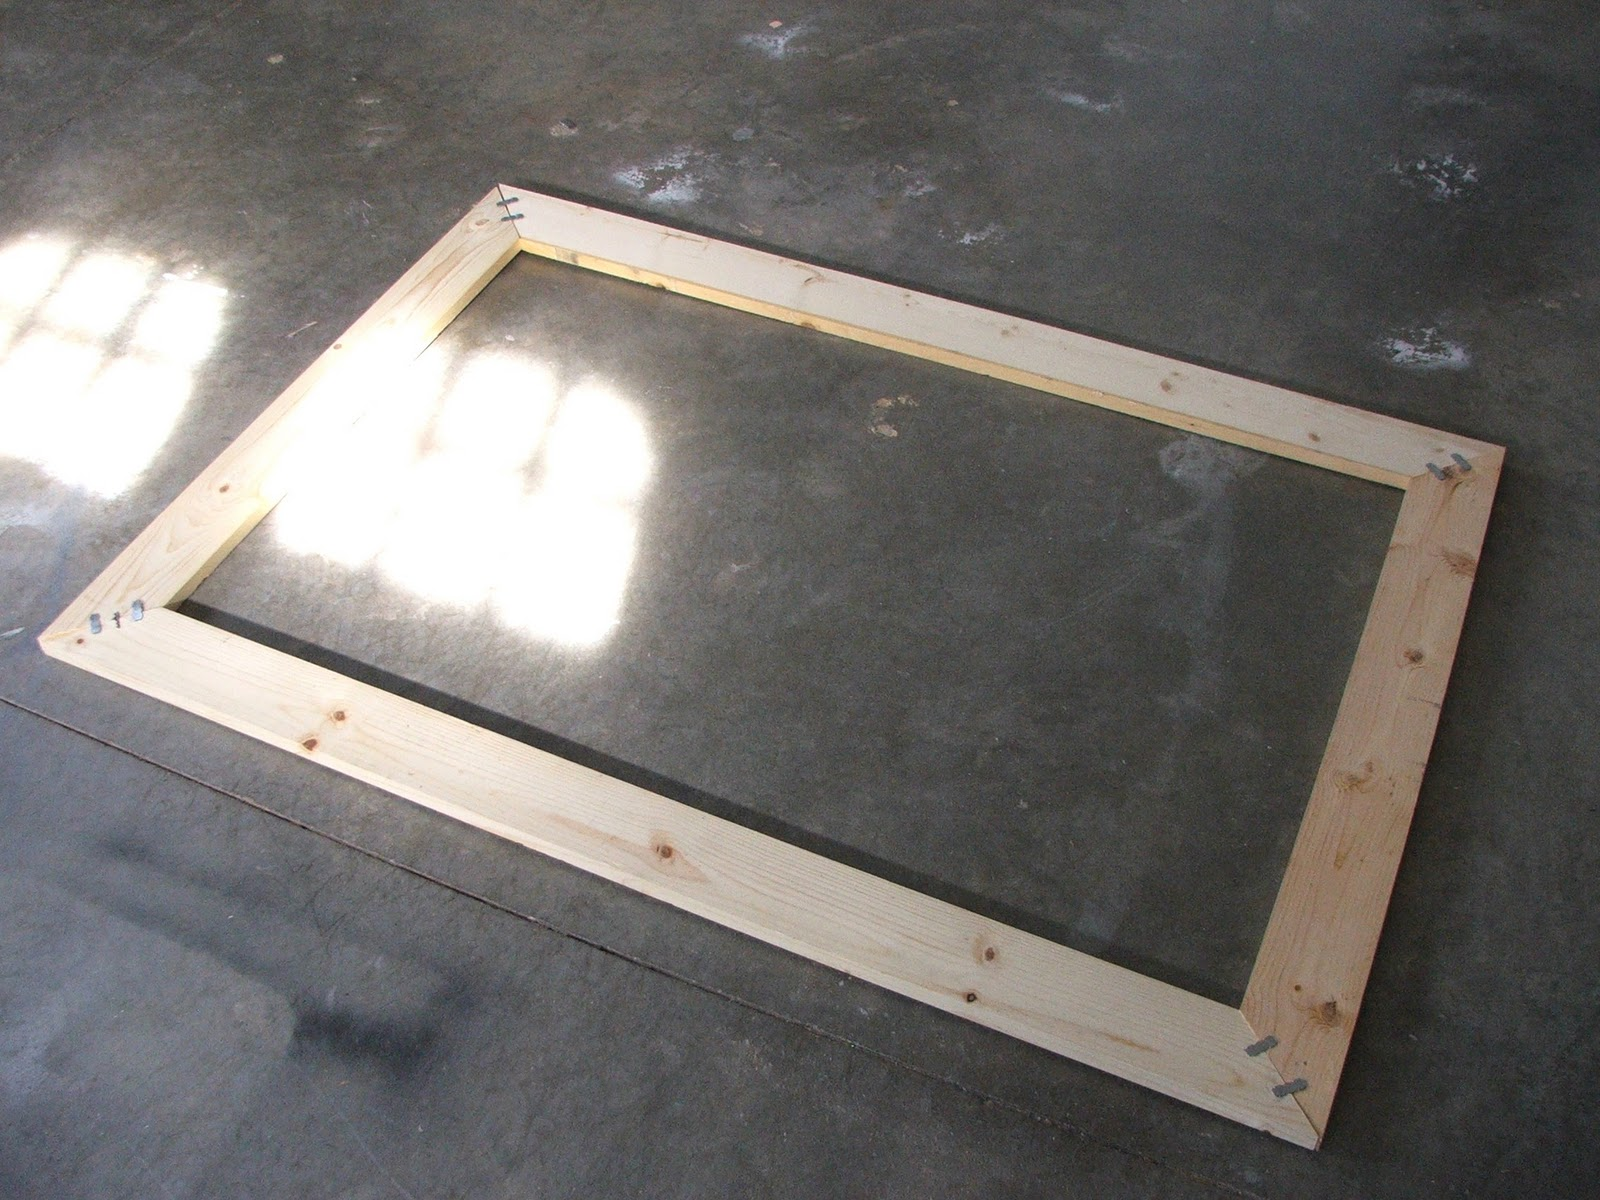 Cheap Large Frames Part - 37: Super Easy To Build And It Has Soooooo Many Uses! My Idea Was To Build A Large  Frame (35 By 54) And Staple The Back With Fabricu2014and Then Place It On My ...